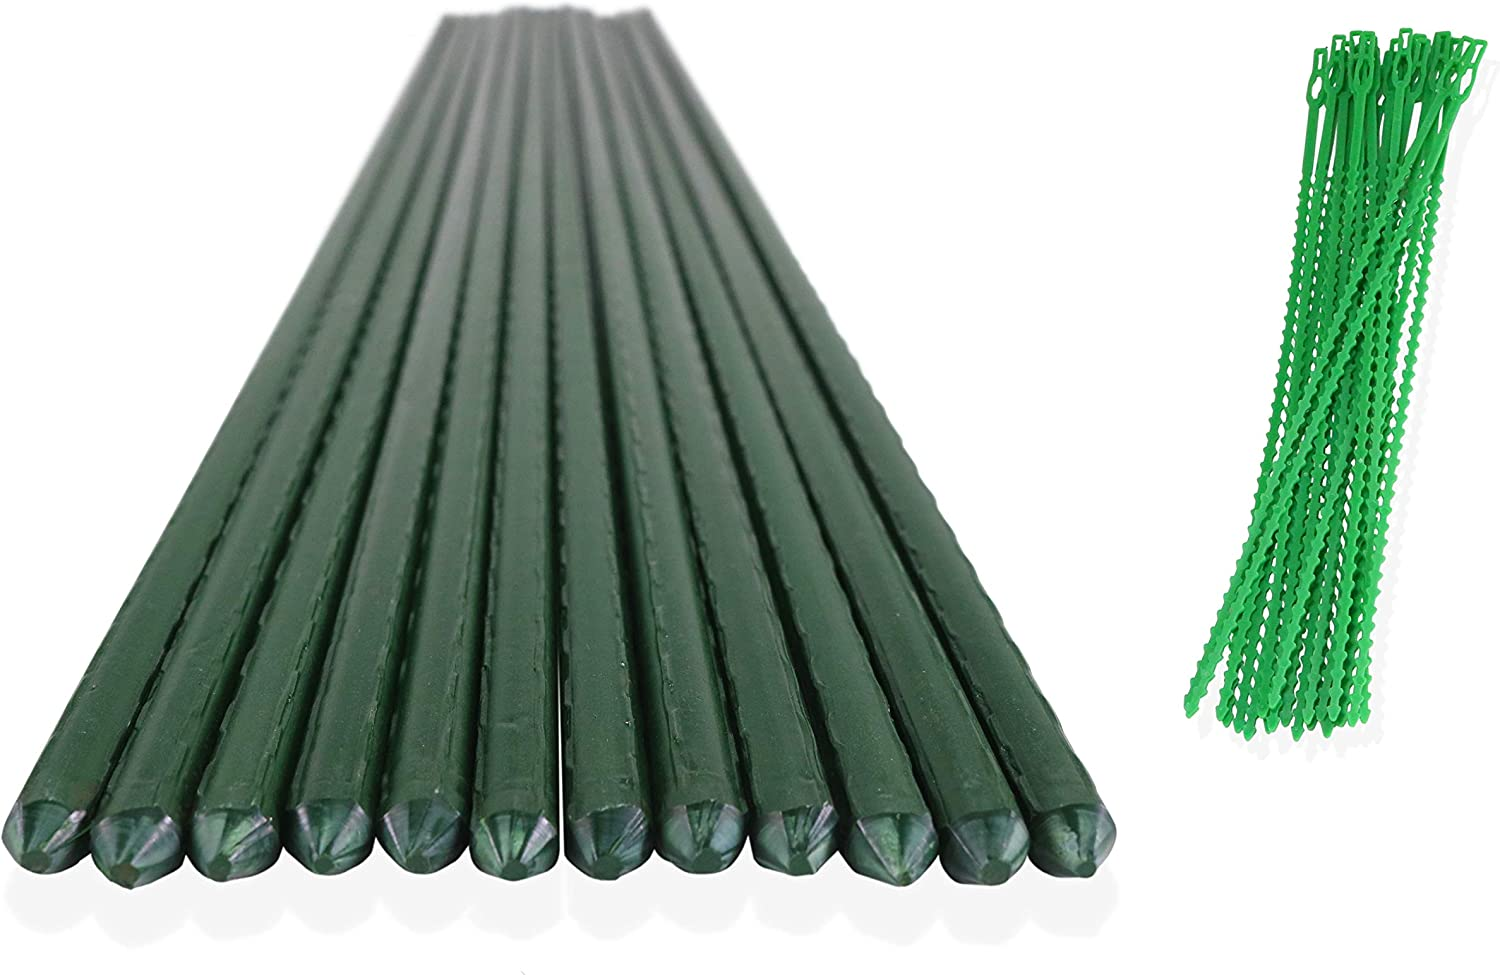 ClausHavn - Pack of 12 Green Plastic Coated Metal Garden Tomato Stakes Cane Sticks for Plant Support, 3ft Long x 0.43in Diameter, Comes with 20 Reusable Plastic Plant Ties